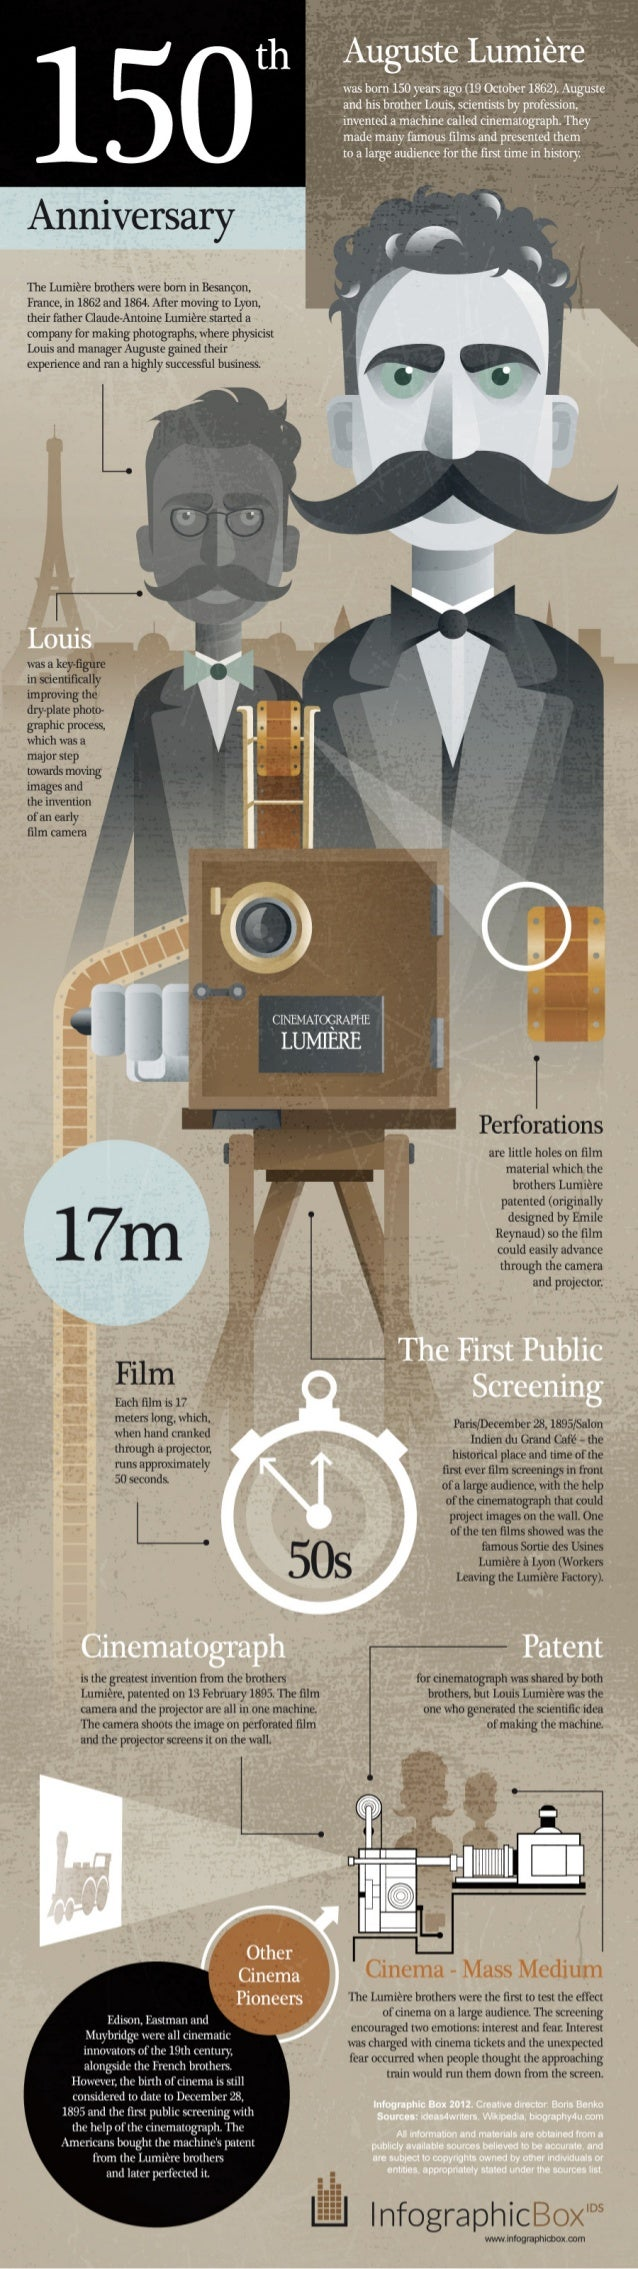 Auguste Lumière: 150th Birthday #INFOGRAPHIC